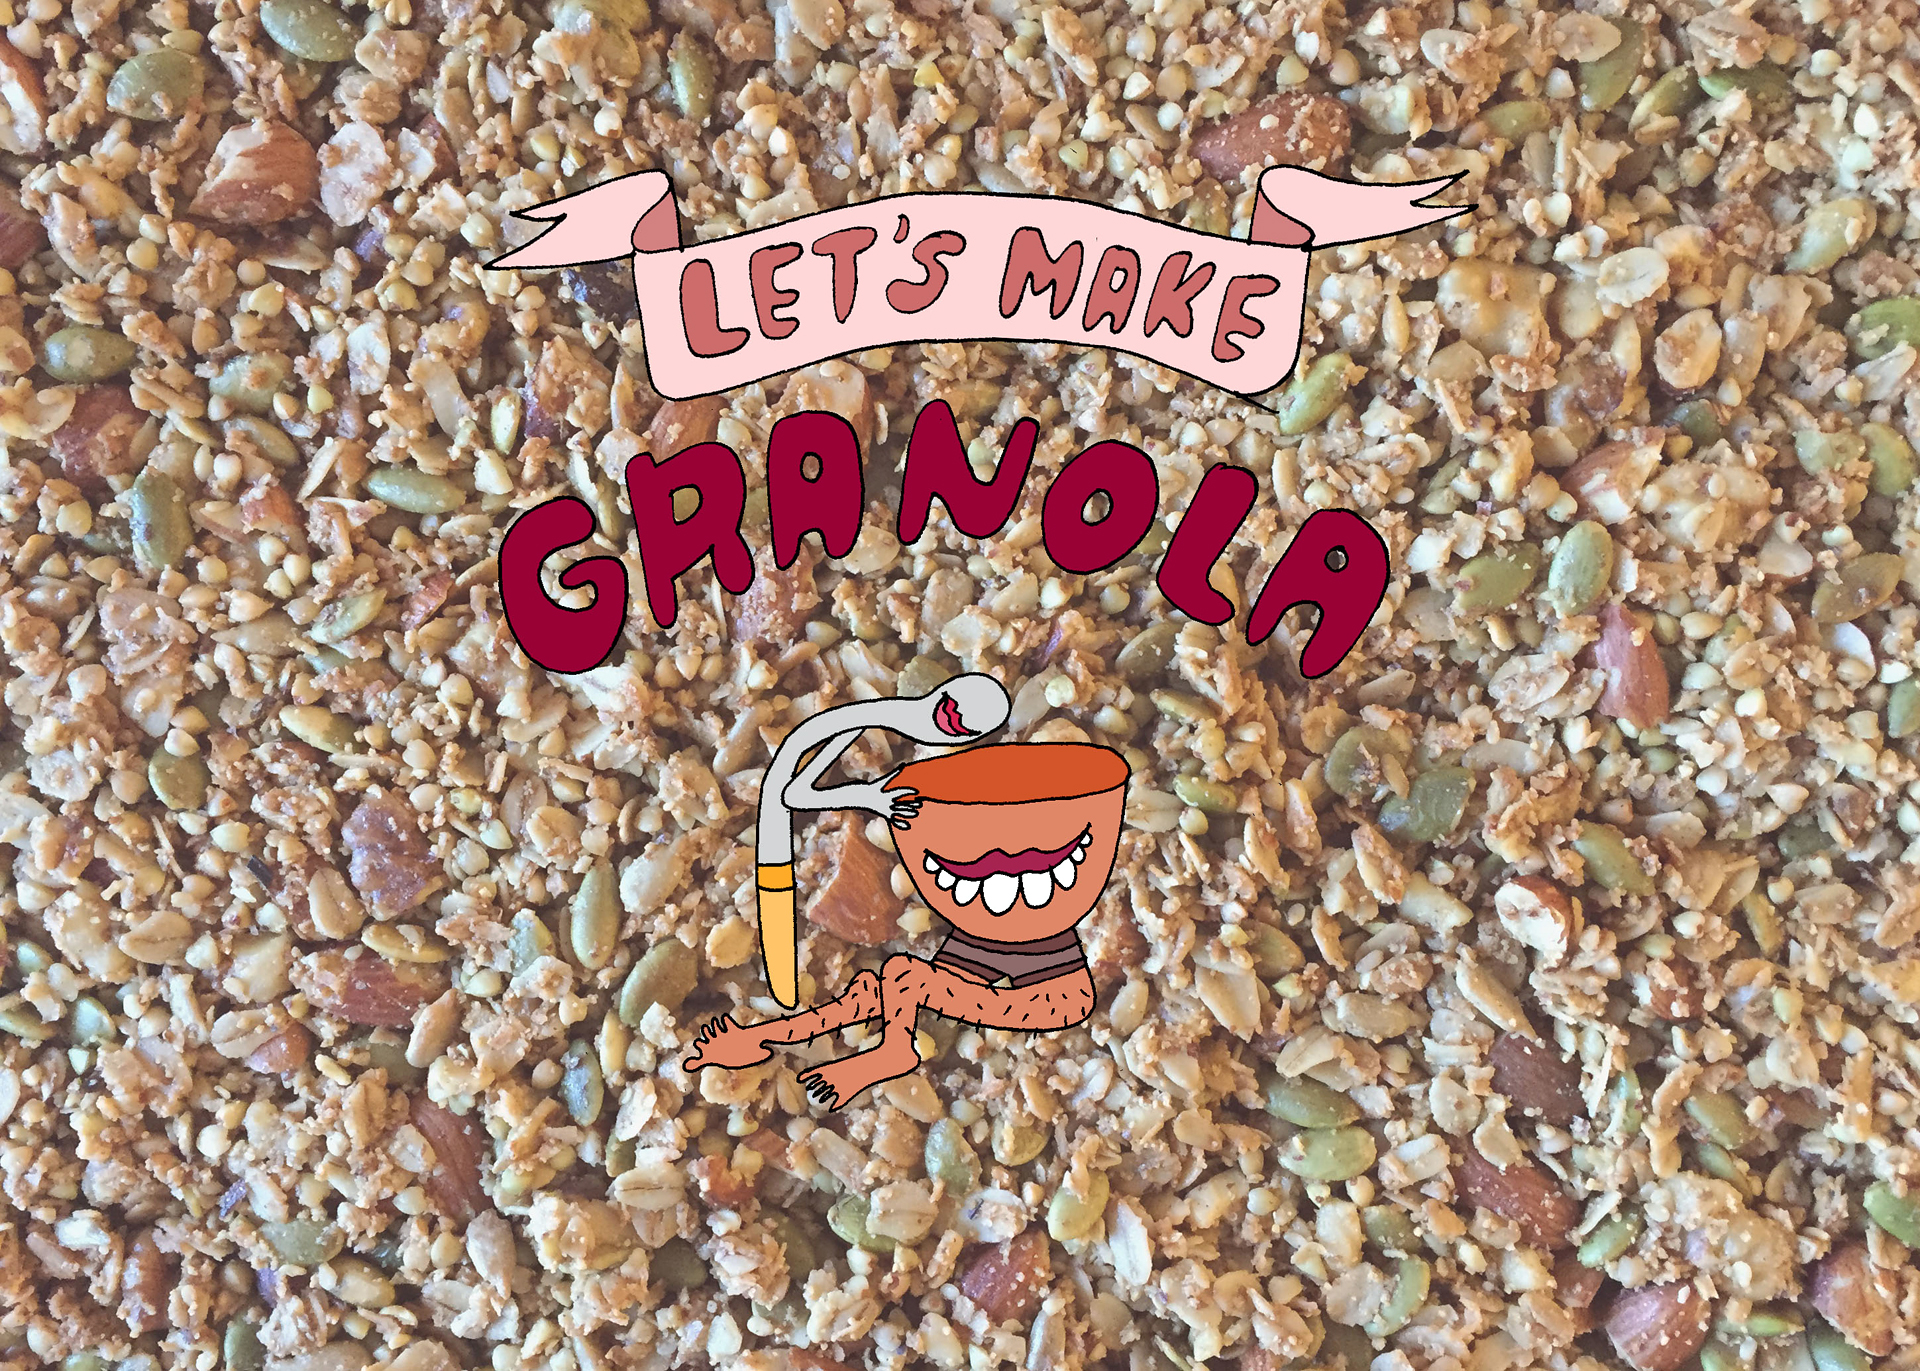 Let's Make Granola!